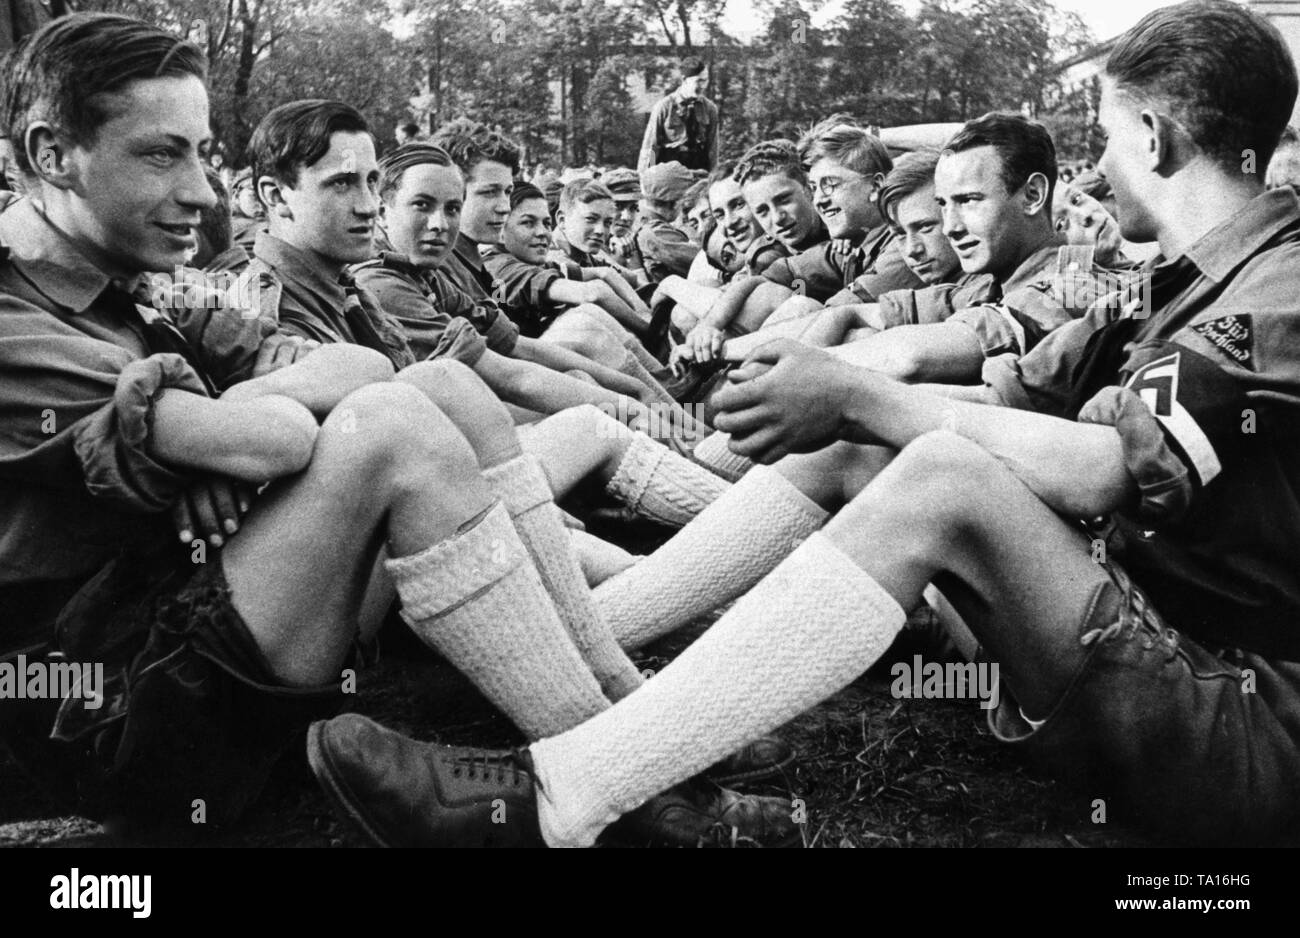 A HJ group from 'Sued Hochland' (Swabia or Oberbayern) at a joint event. Undated recording, possibly a film scene. - Stock Image